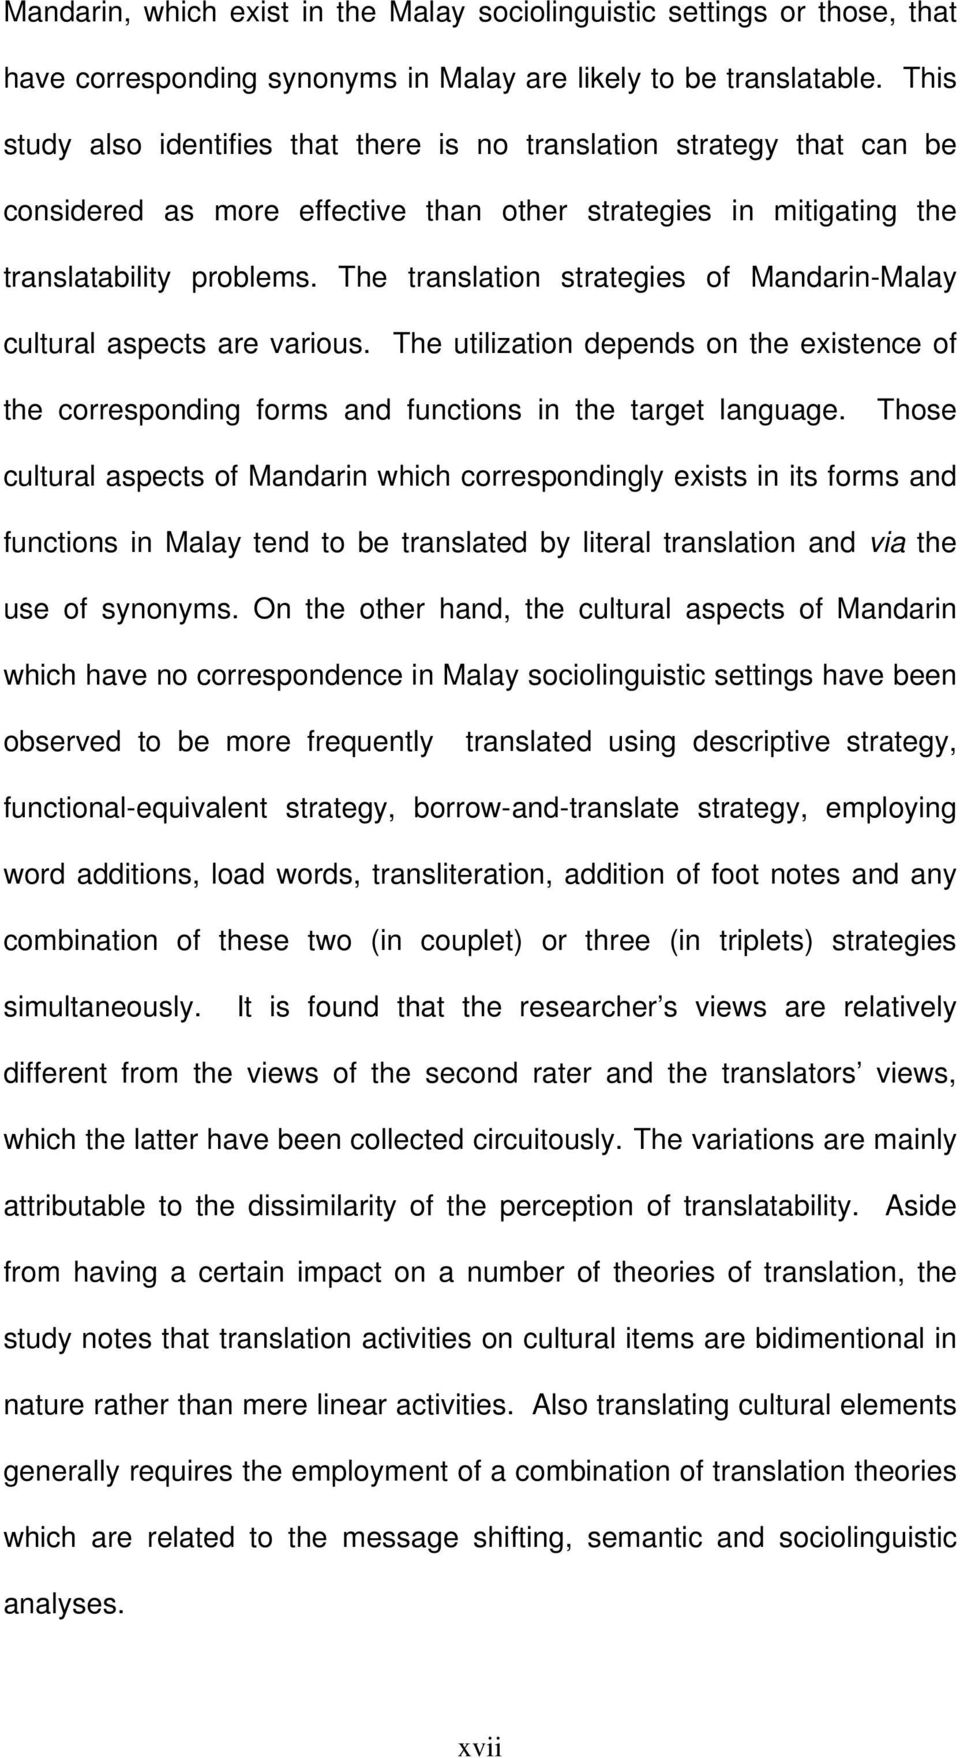 The translation strategies of Mandarin-Malay cultural aspects are various. The utilization depends on the existence of the corresponding forms and functions in the target language.